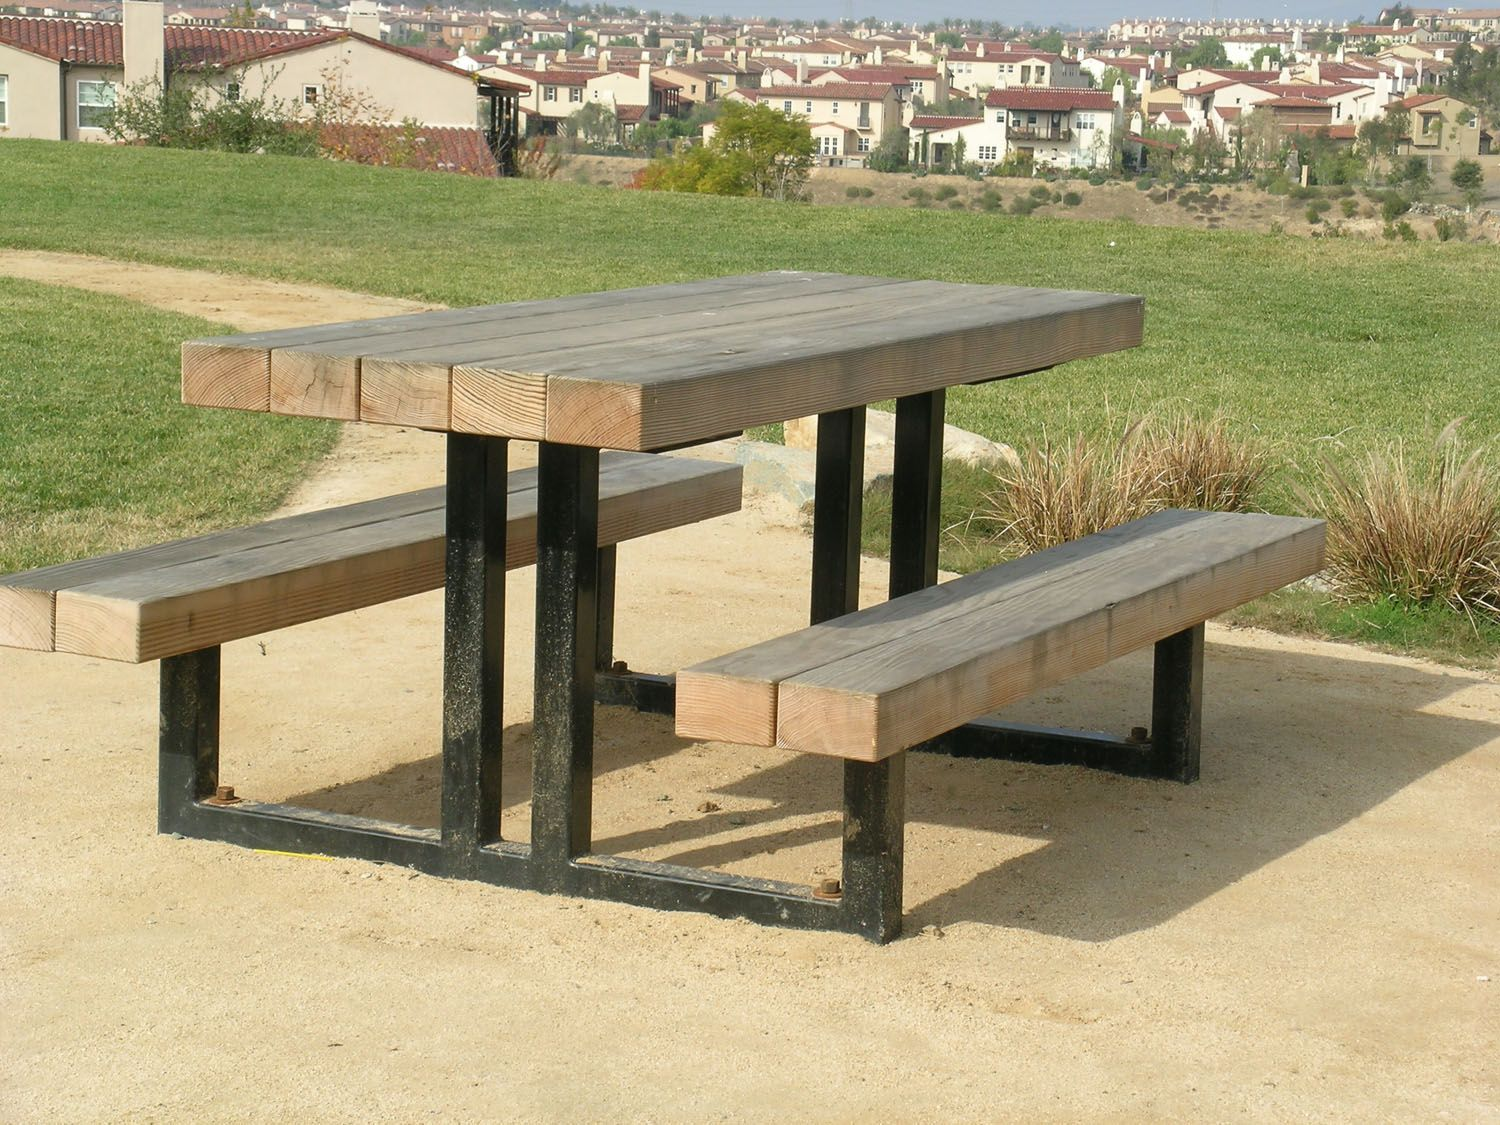 Metal Frame Picnic Table HU Cnxconsortiumorg Outdoor - Heavy duty commercial outdoor park picnic table frame kit